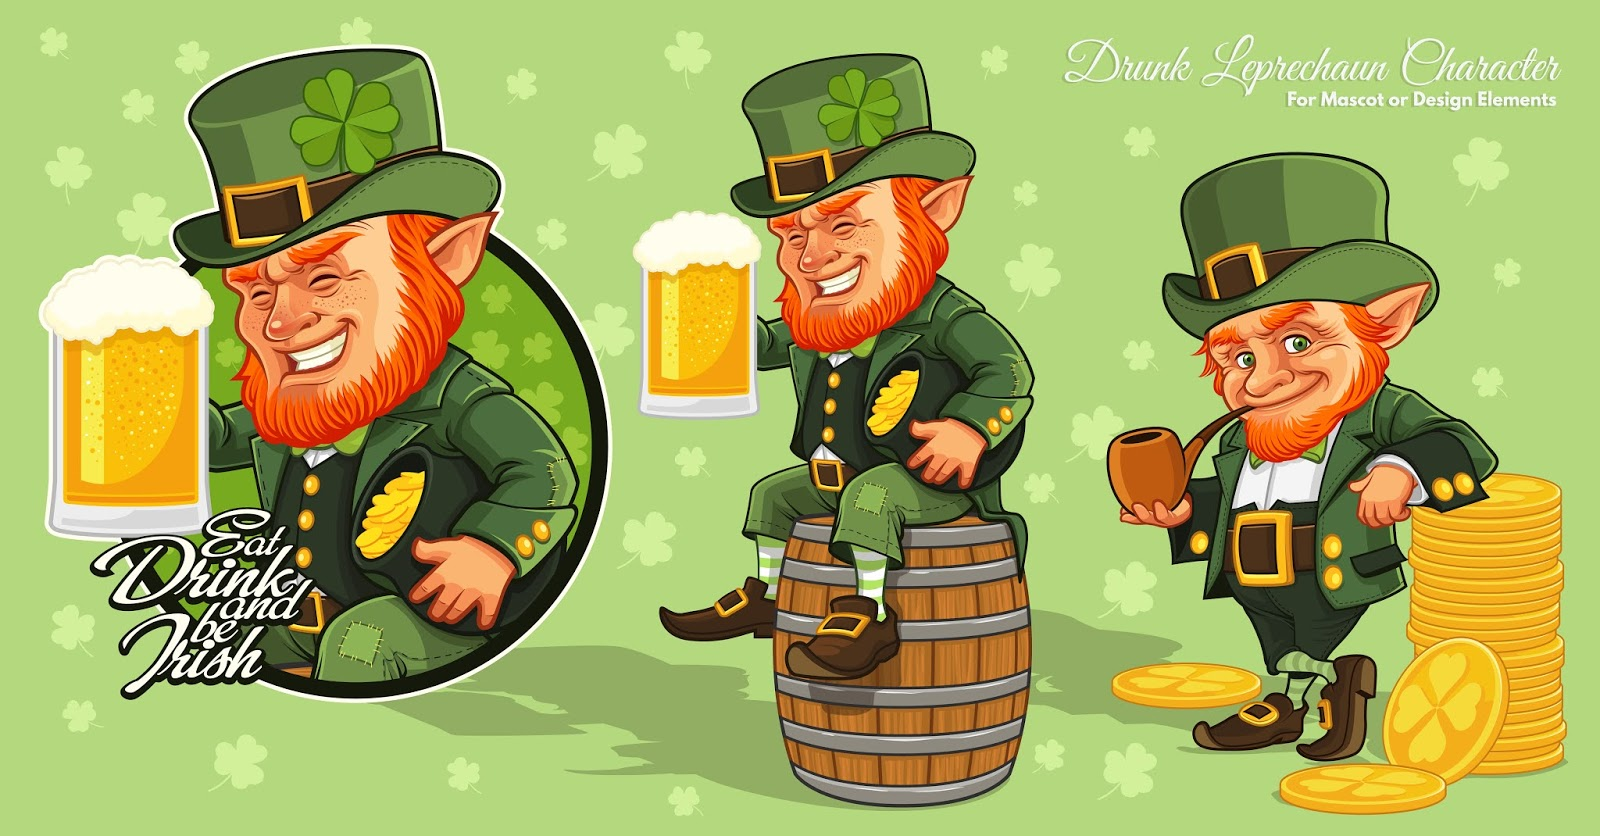 Leprechaun Cartoon Character St Patrick S Day Free Download Vector CDR, AI, EPS and PNG Formats